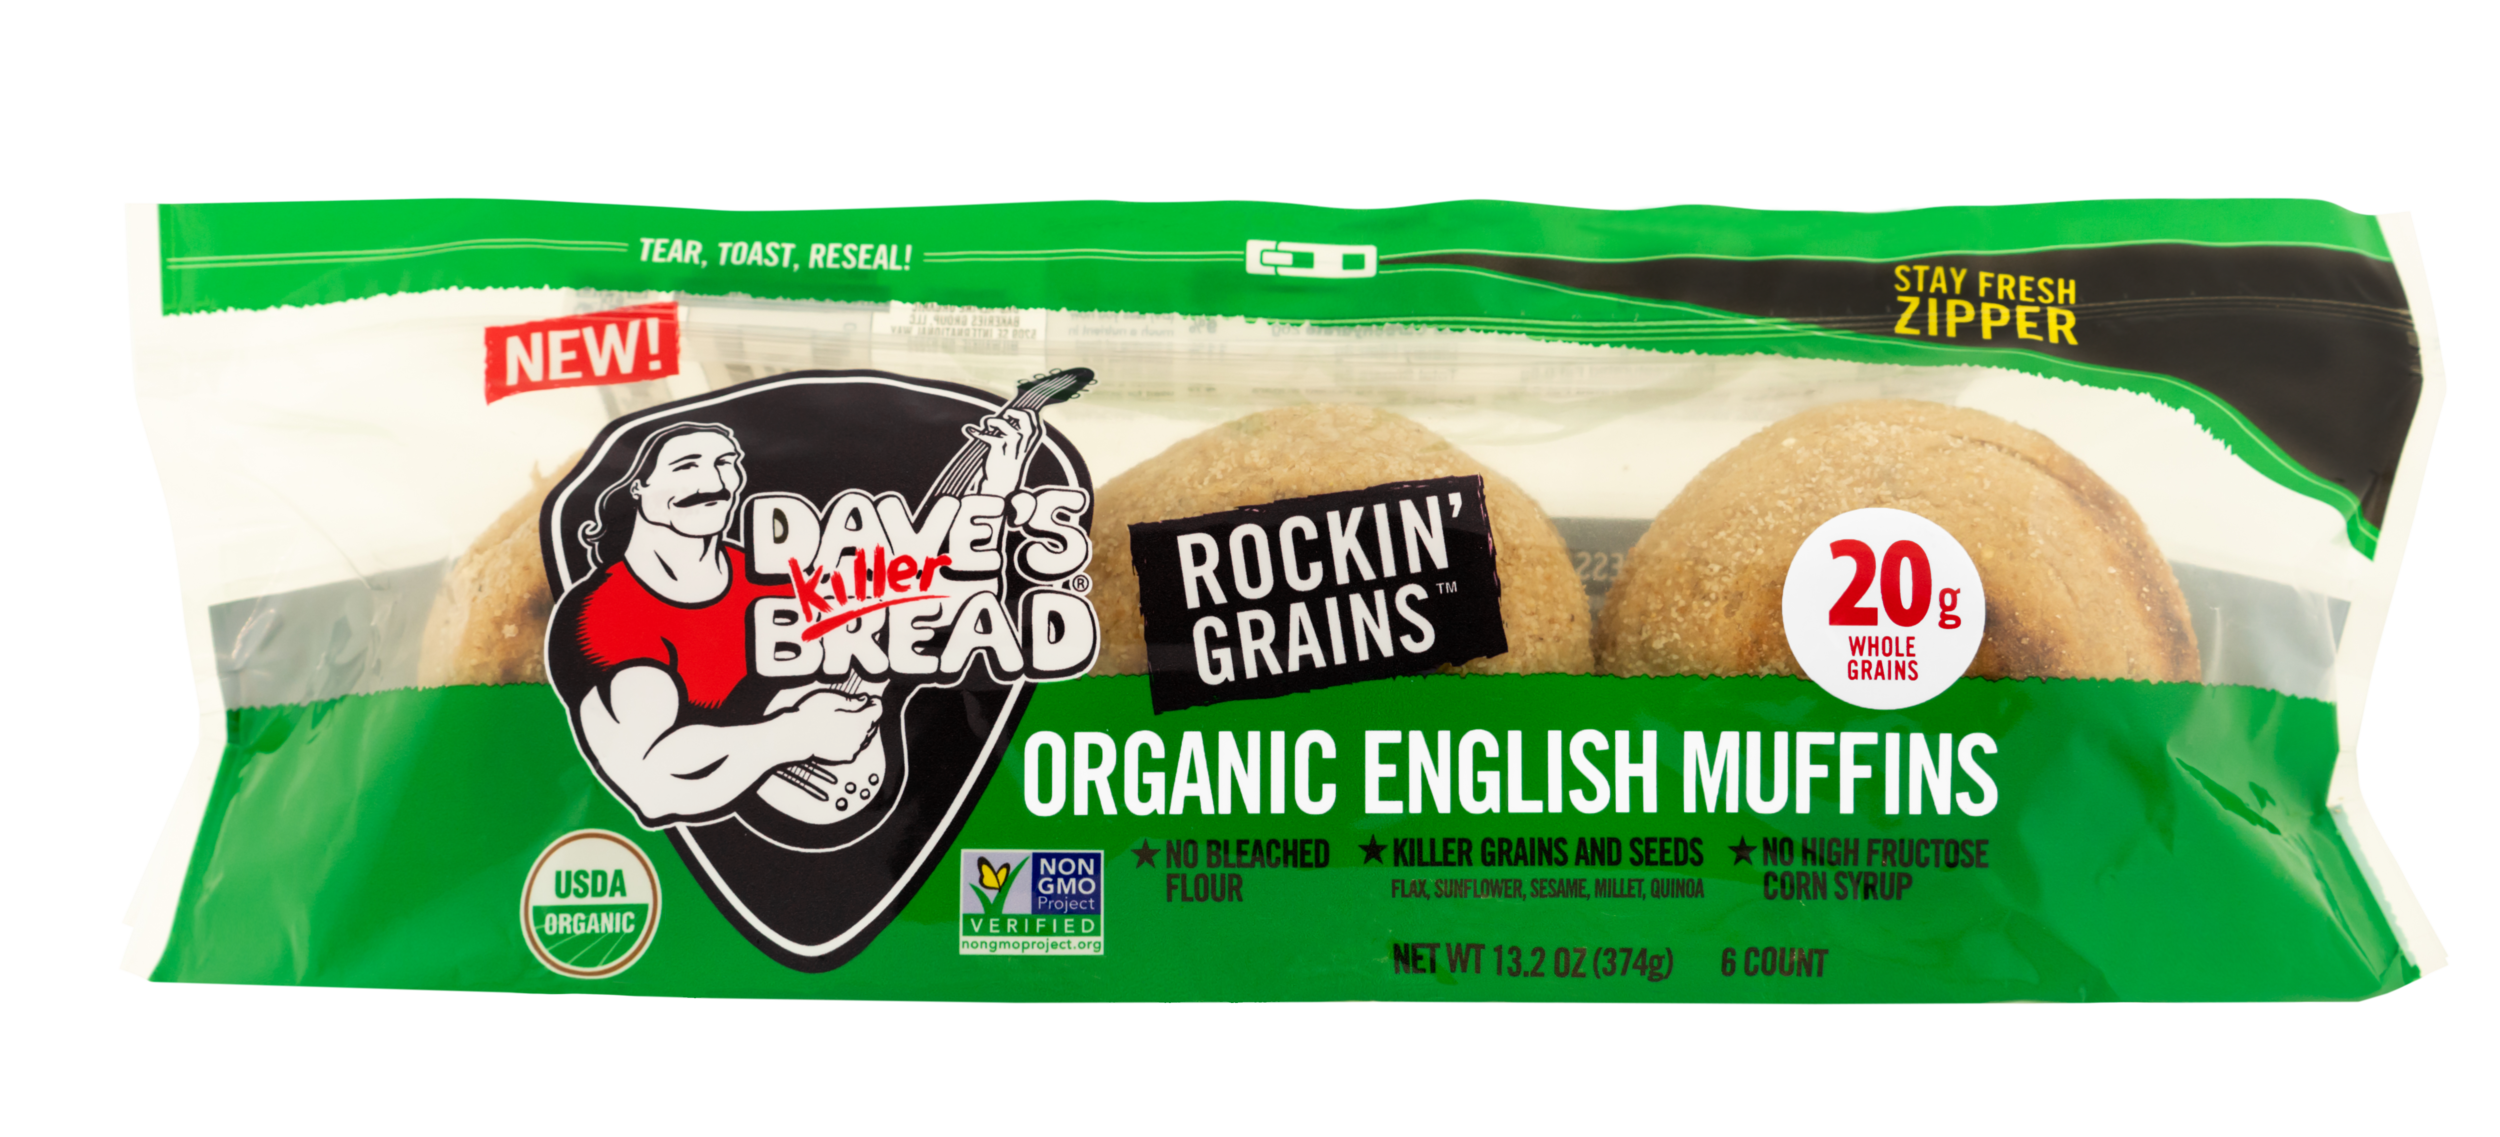 KILLER. ROCKIN'. MUFFINS. - Power-packed with killer grains and seeds (flax seeds, sunflower seeds, sesame seeds, millet and quinoa,) and no bleached flour or high fructose corn syrup, they'll rock your world.